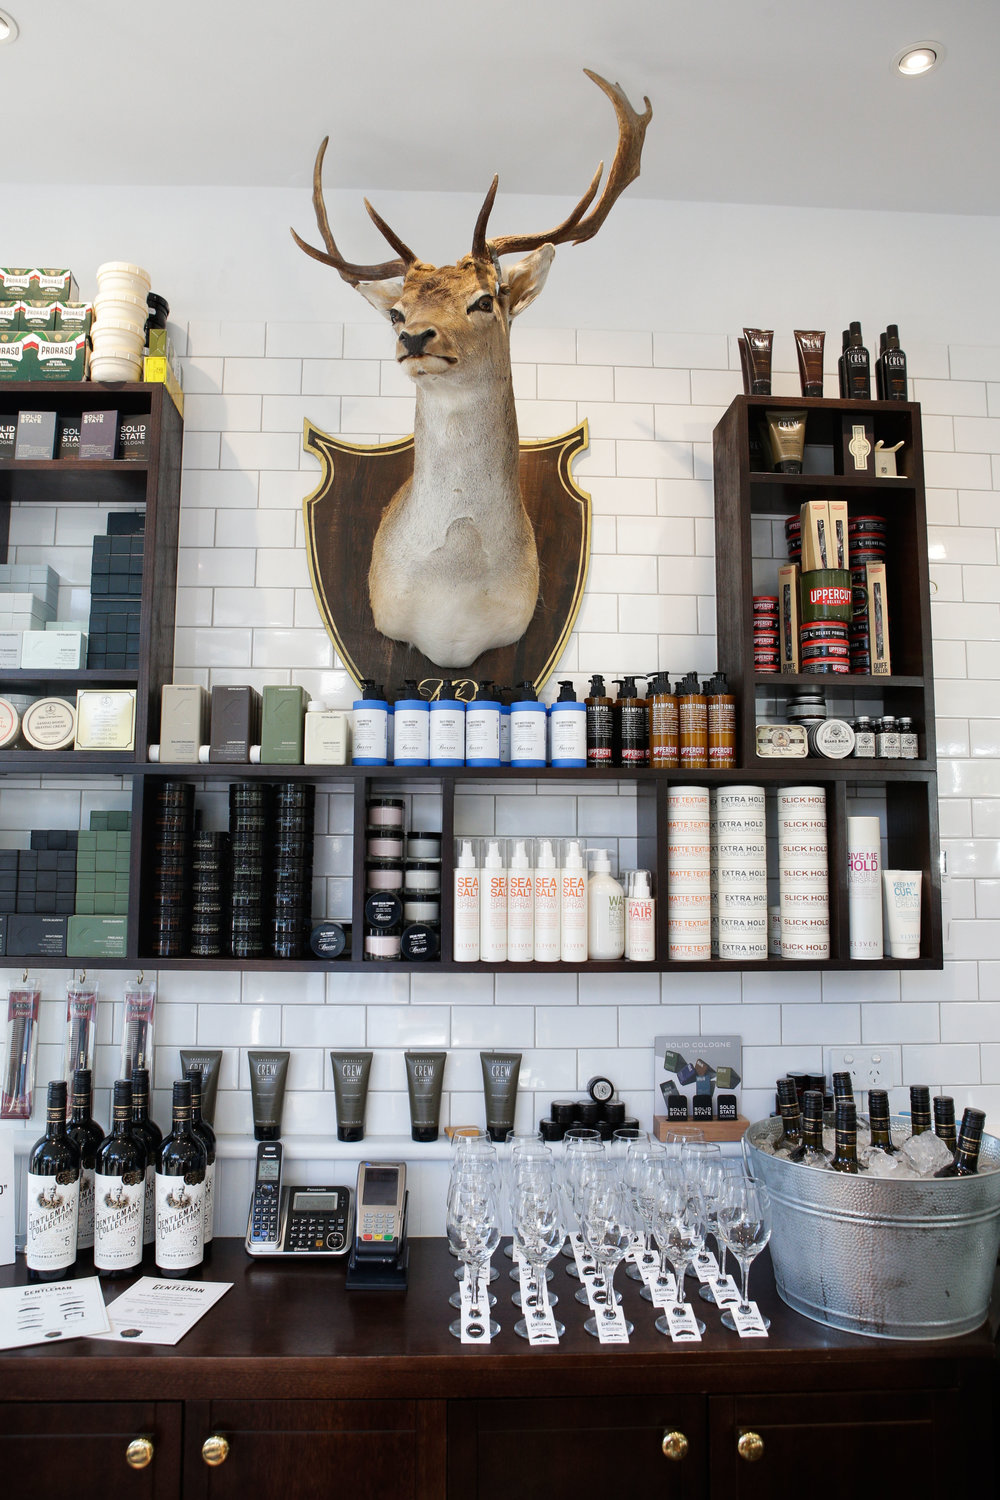 gentlemans-collection-movember-series-3-2016-kings-domain-barber-shop-interior-1.jpg